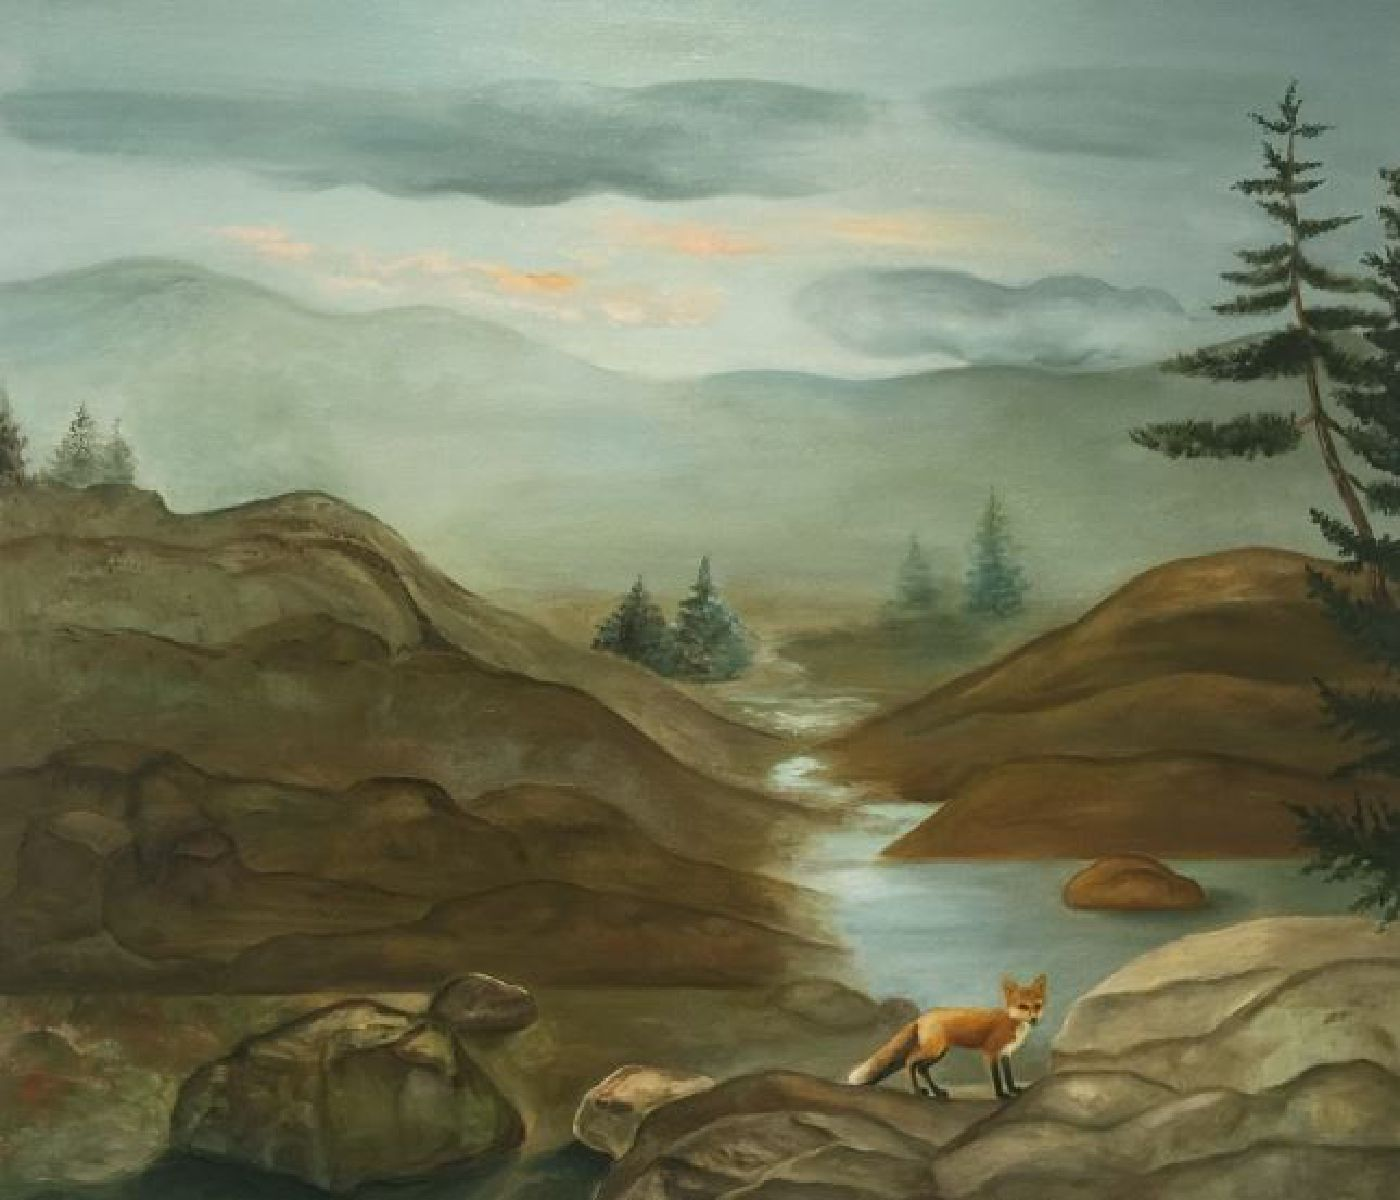 Lone Fox with Mountains - oil on canvas, 36 x 42 inches, 2016